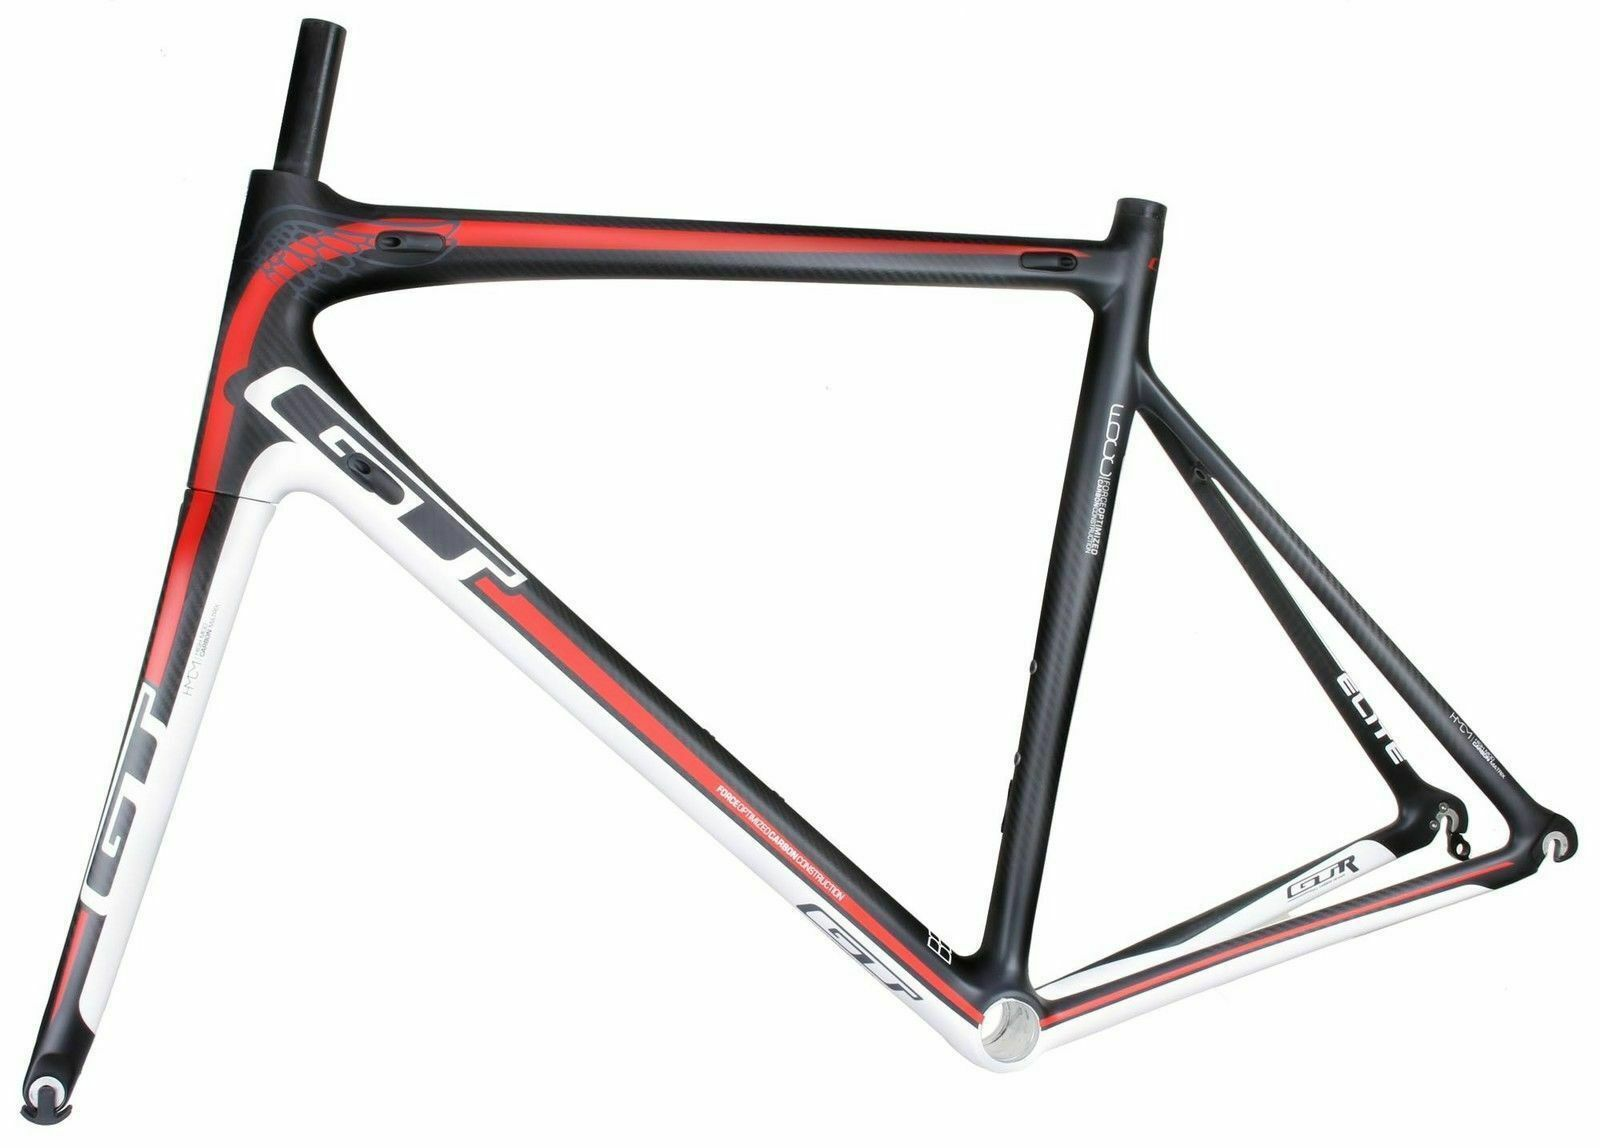 GT GTR ELITE Full Carbon Road Bike Bicycle Frame 56cm 9504157069077 ...